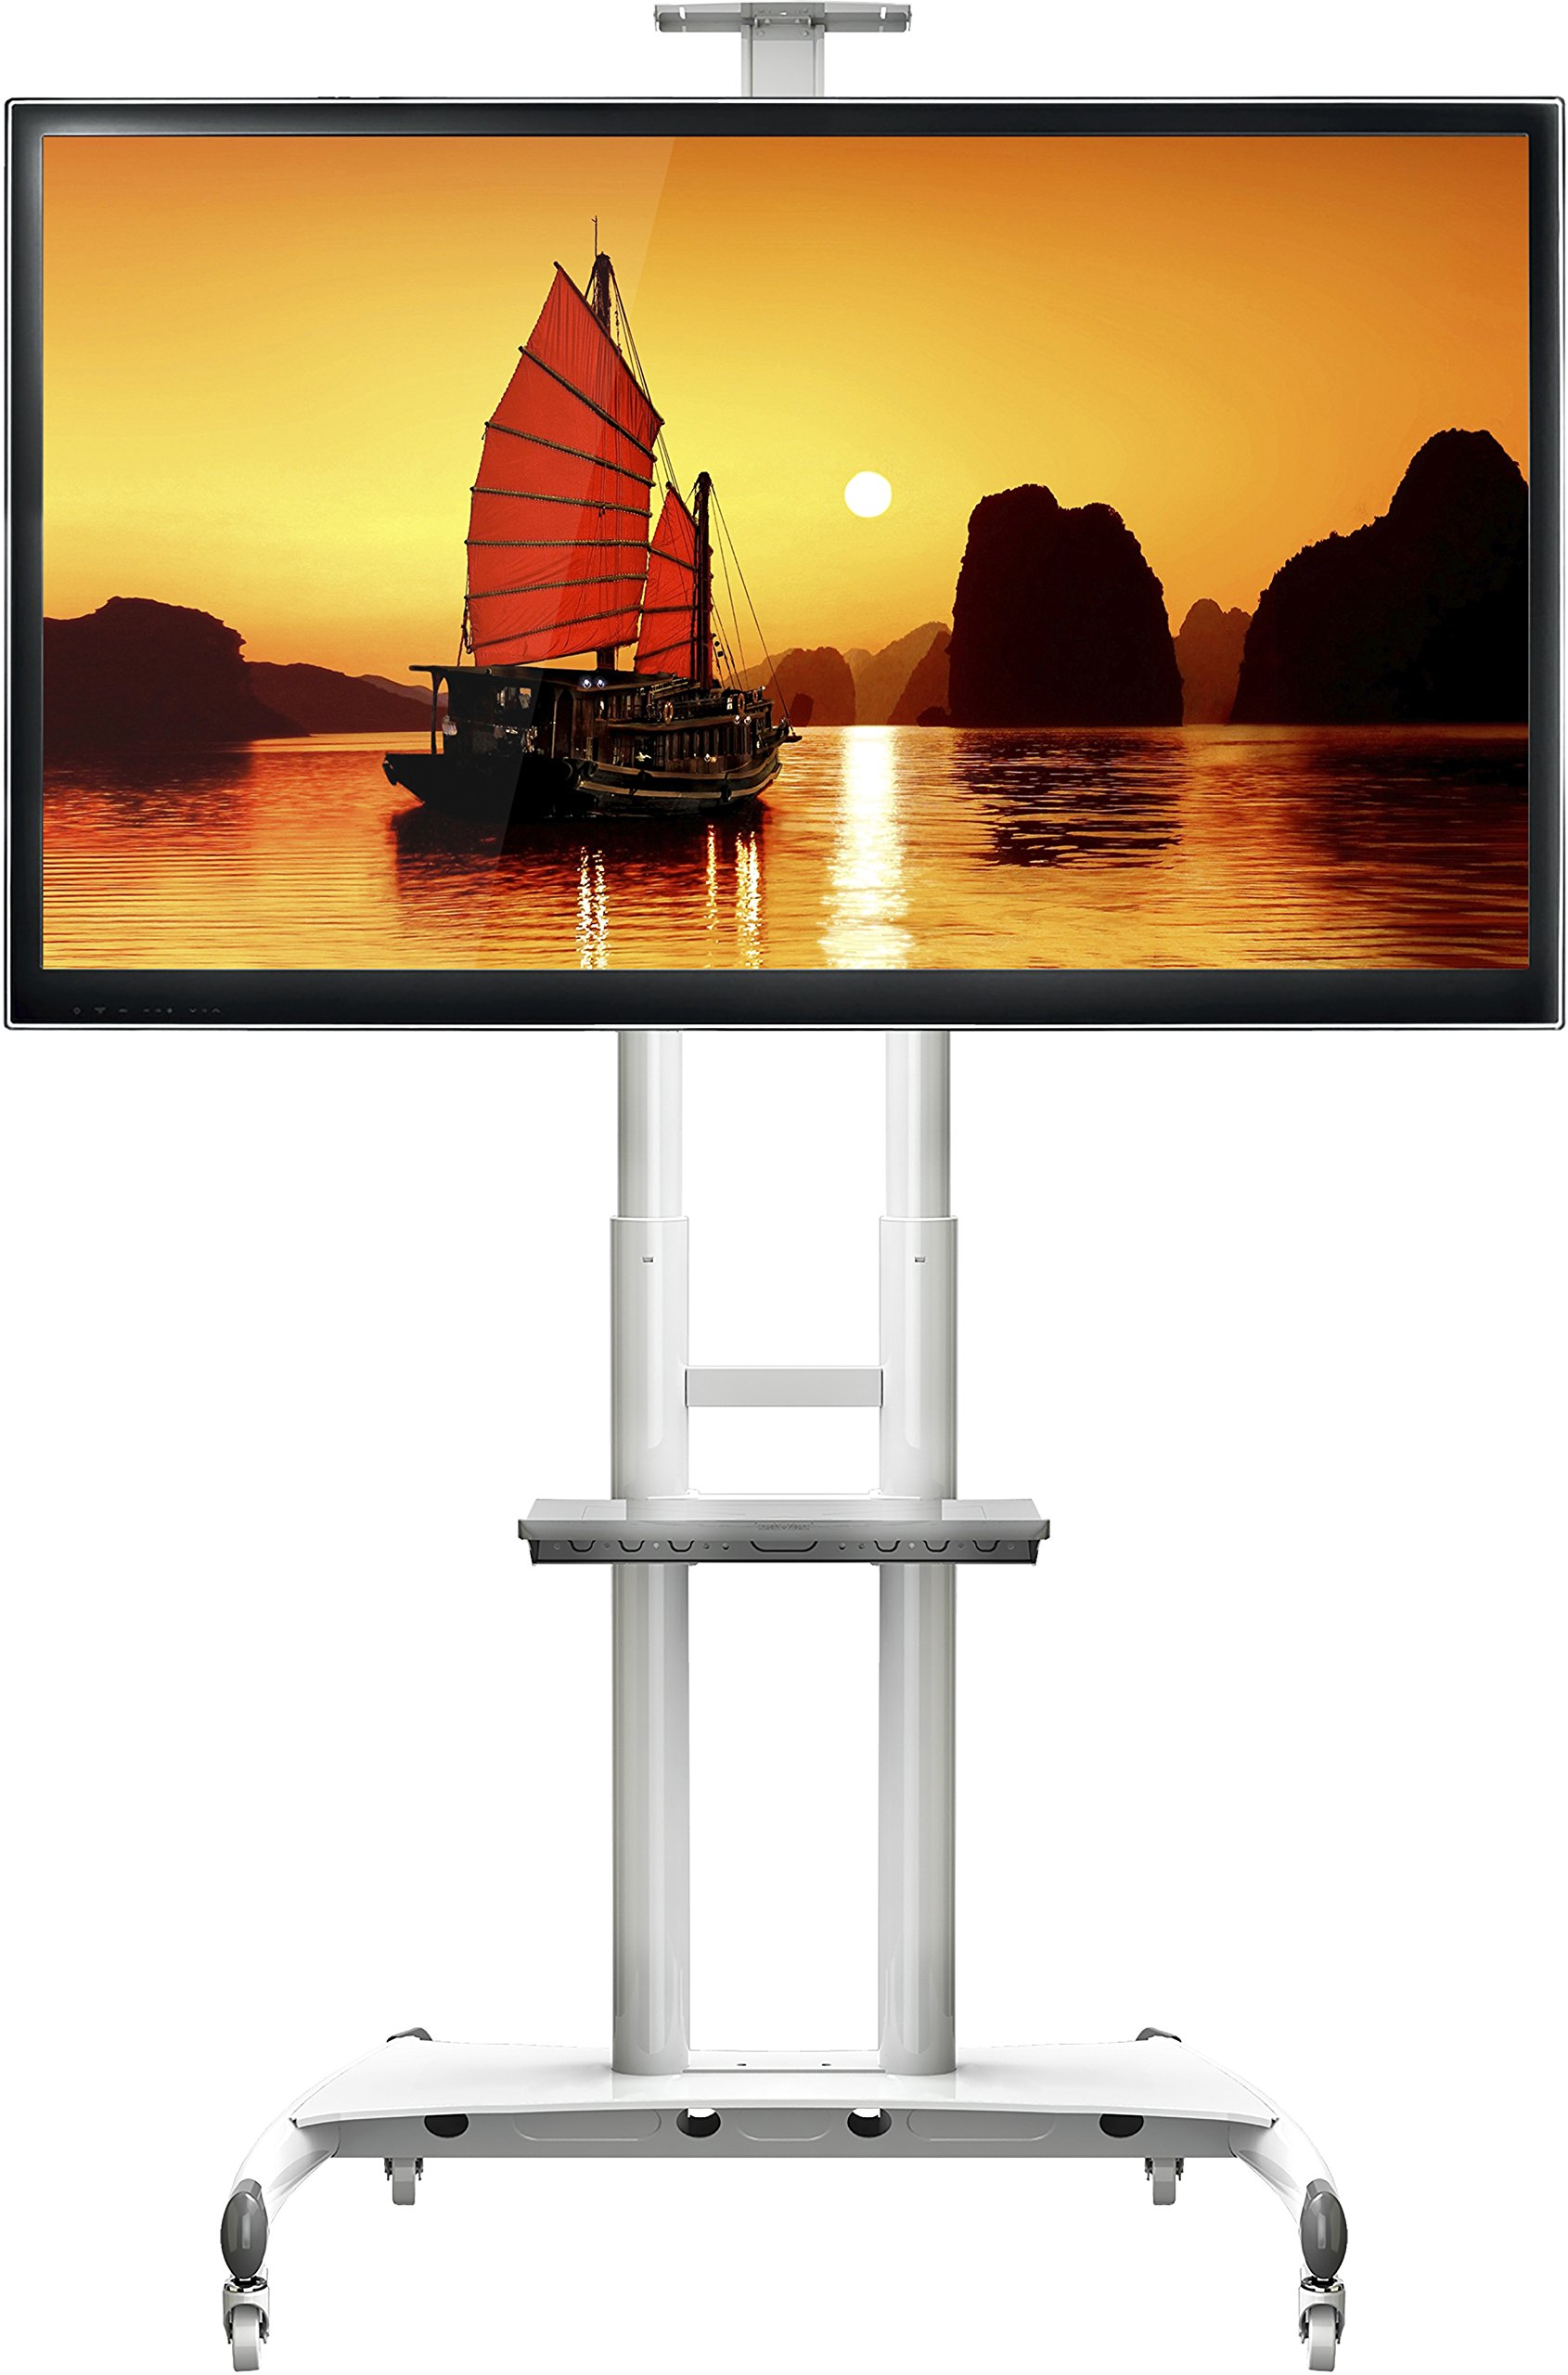 North Bayou Universal Mobile TV Stand for Flat Panel Screen 55'' - 80 inch LCD LED OLED Televisions Heavy Duty Portable Cart with VESA Mount up to 200 lbs AVA1800-70-1P White by North Bayou